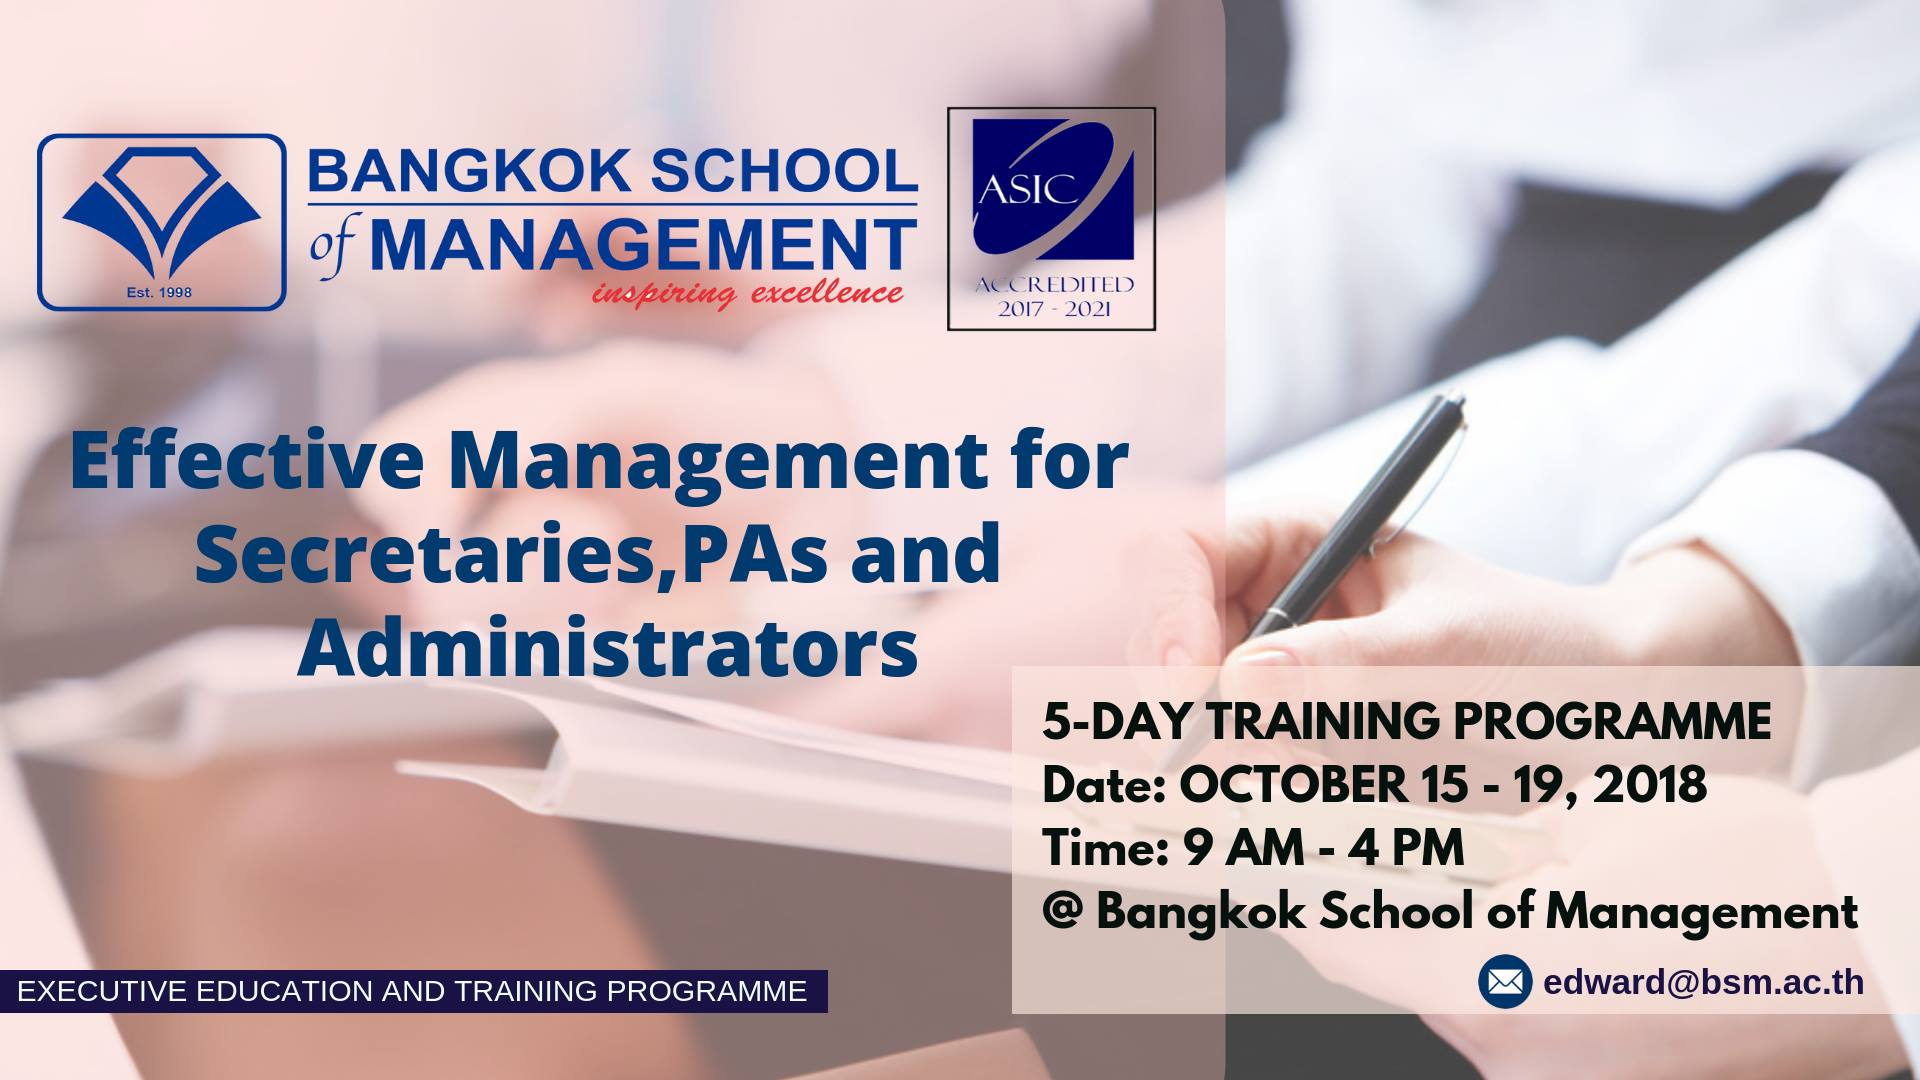 Date: October 15 &#8211; 19, 2018<br></br>Effective Management for Secretaries, PAs and Administrators